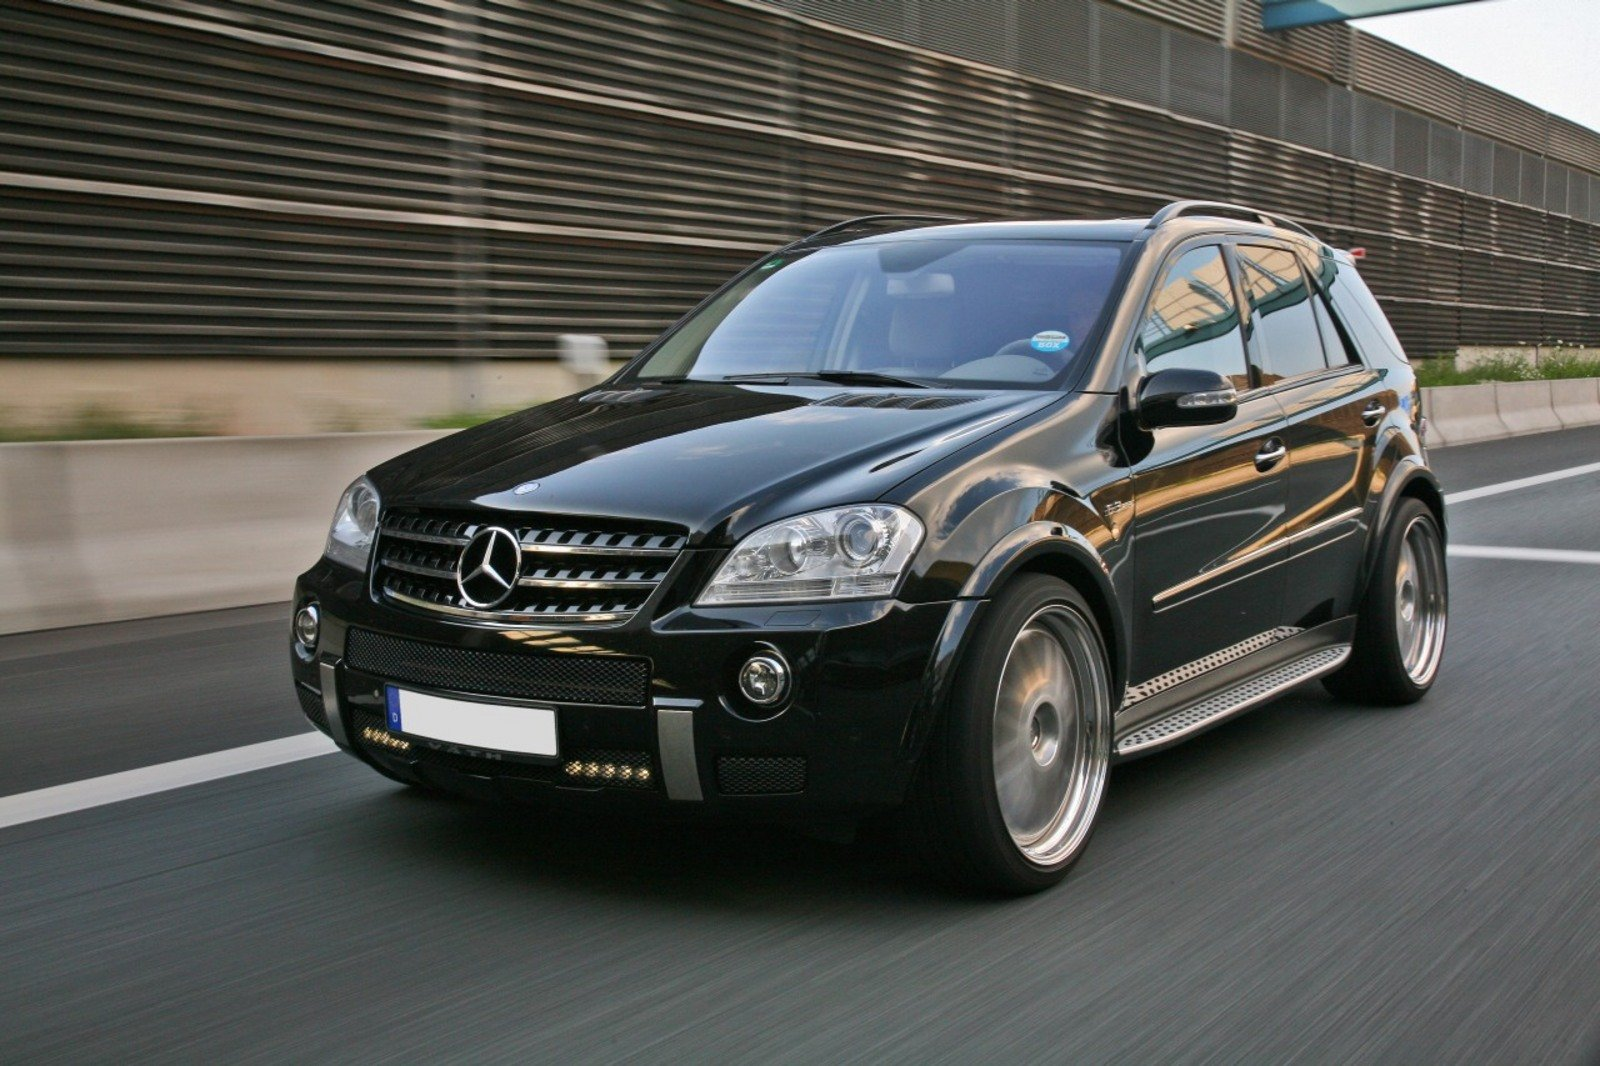 Mercedes benz ml 63 amg by vath news top speed for Mercedes benz ml 63 amg